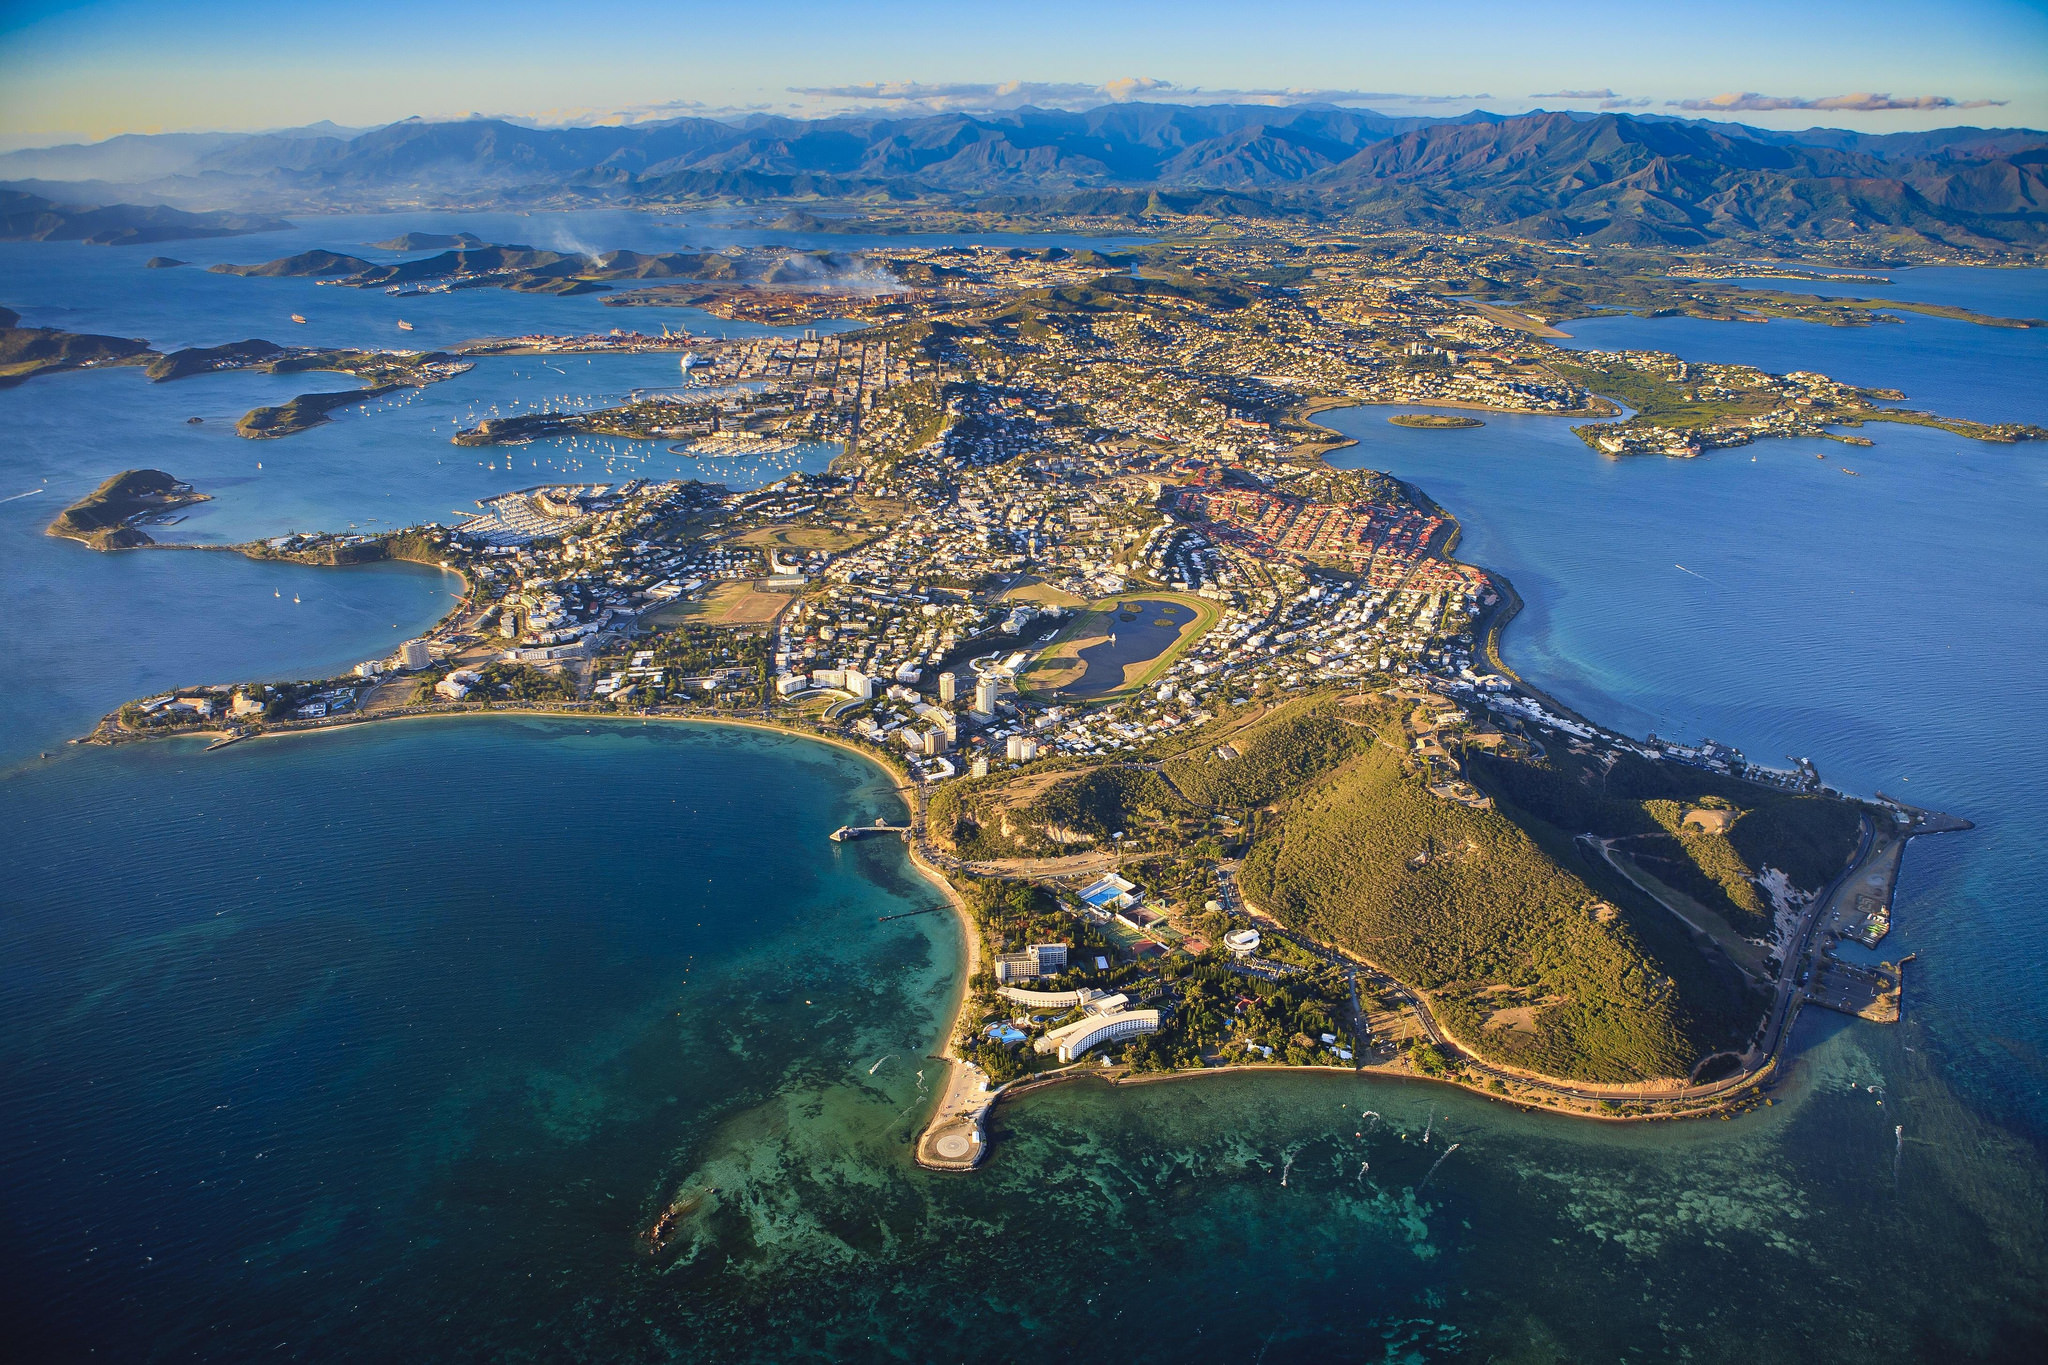 New Caledonia Sights and Attractions -Noumea, New Caledonia